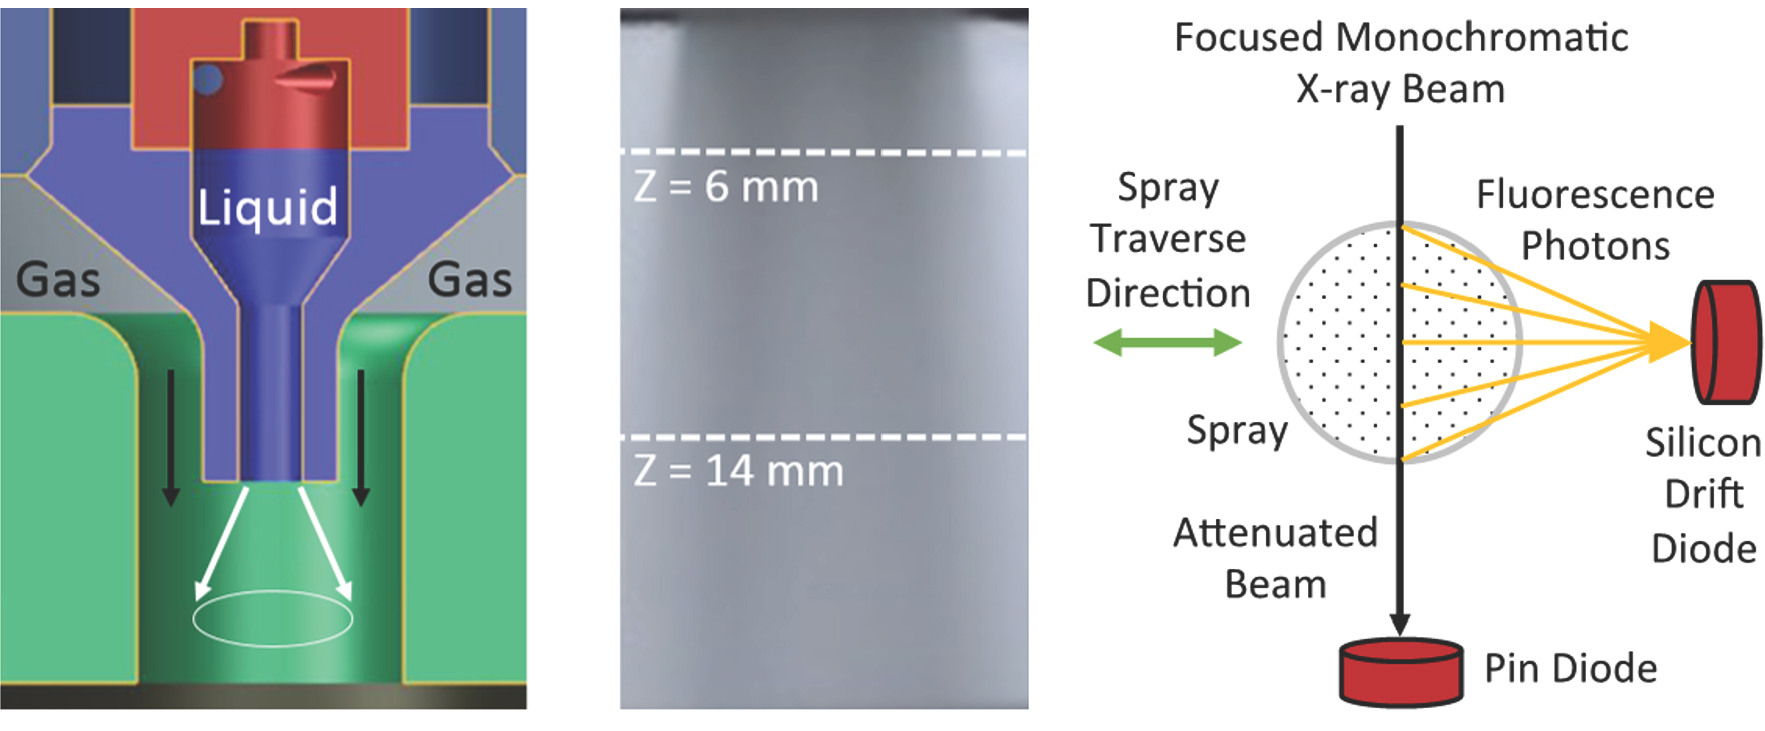 X-Ray Double Vision into Atomizing Sprays